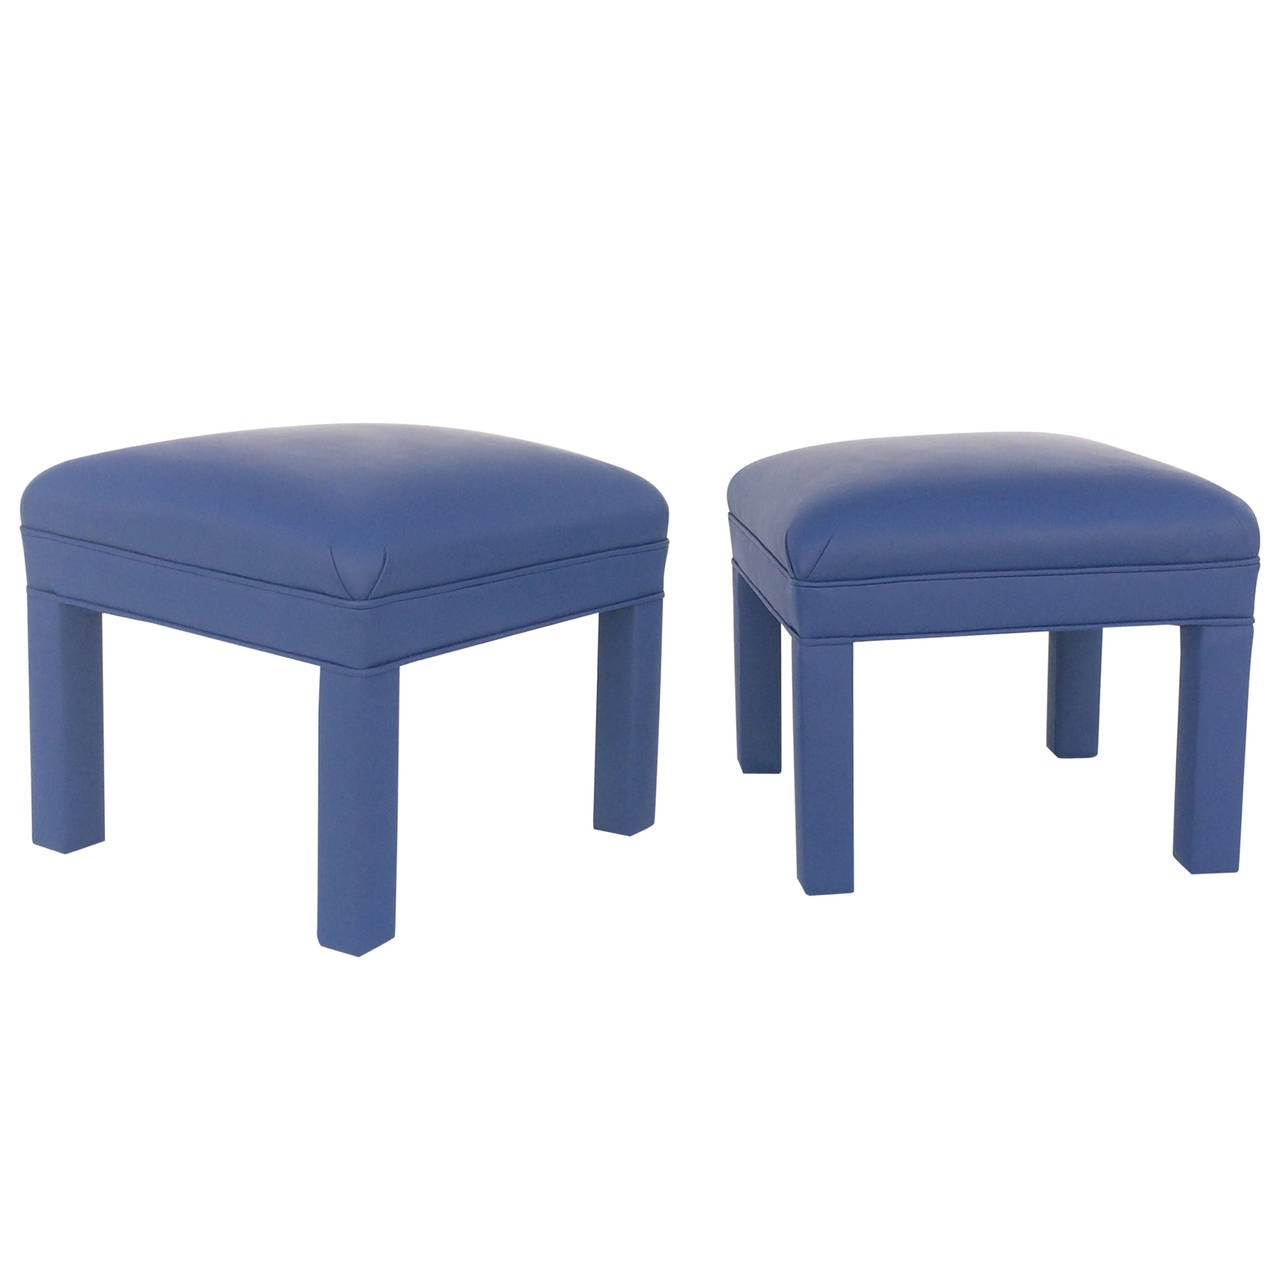 Pair of Newly Reupholstered Ottomans or Low Stools, circa 1980s